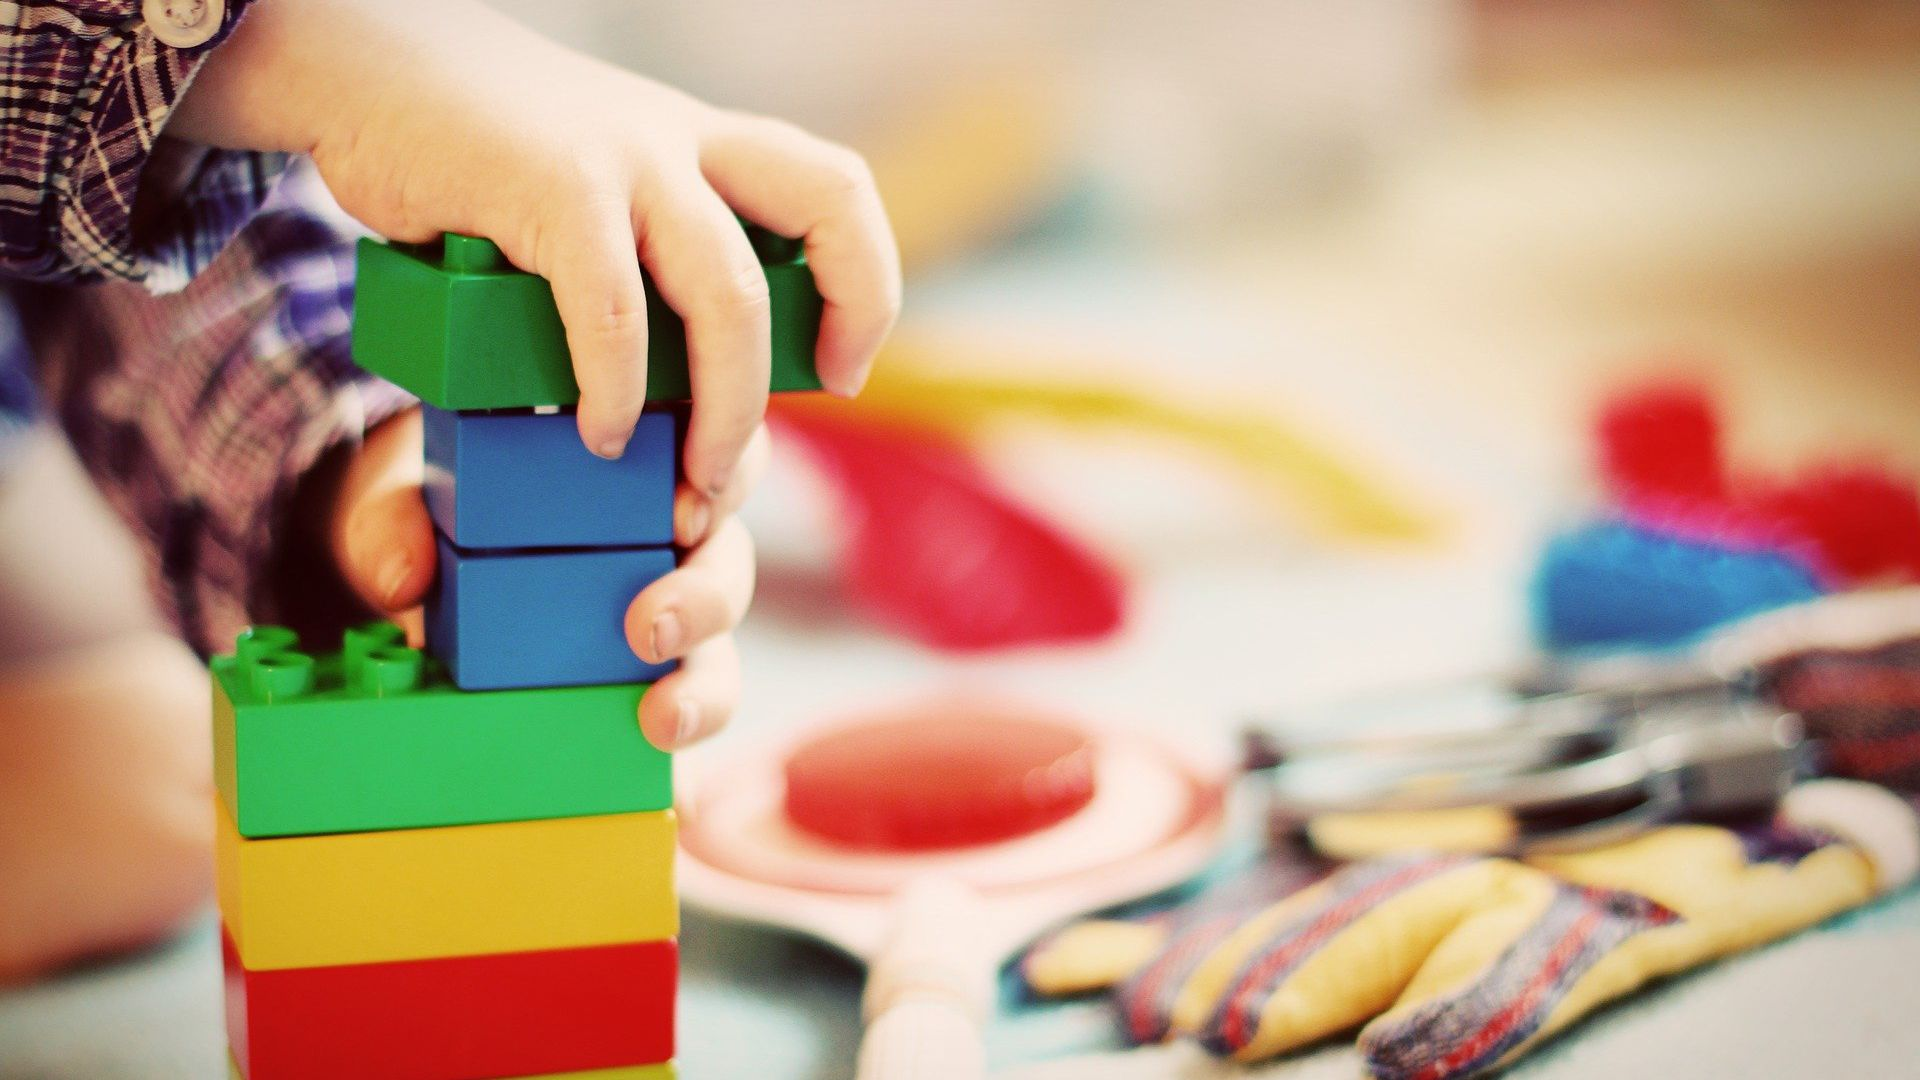 Close-up of a child's hands building with Legos.